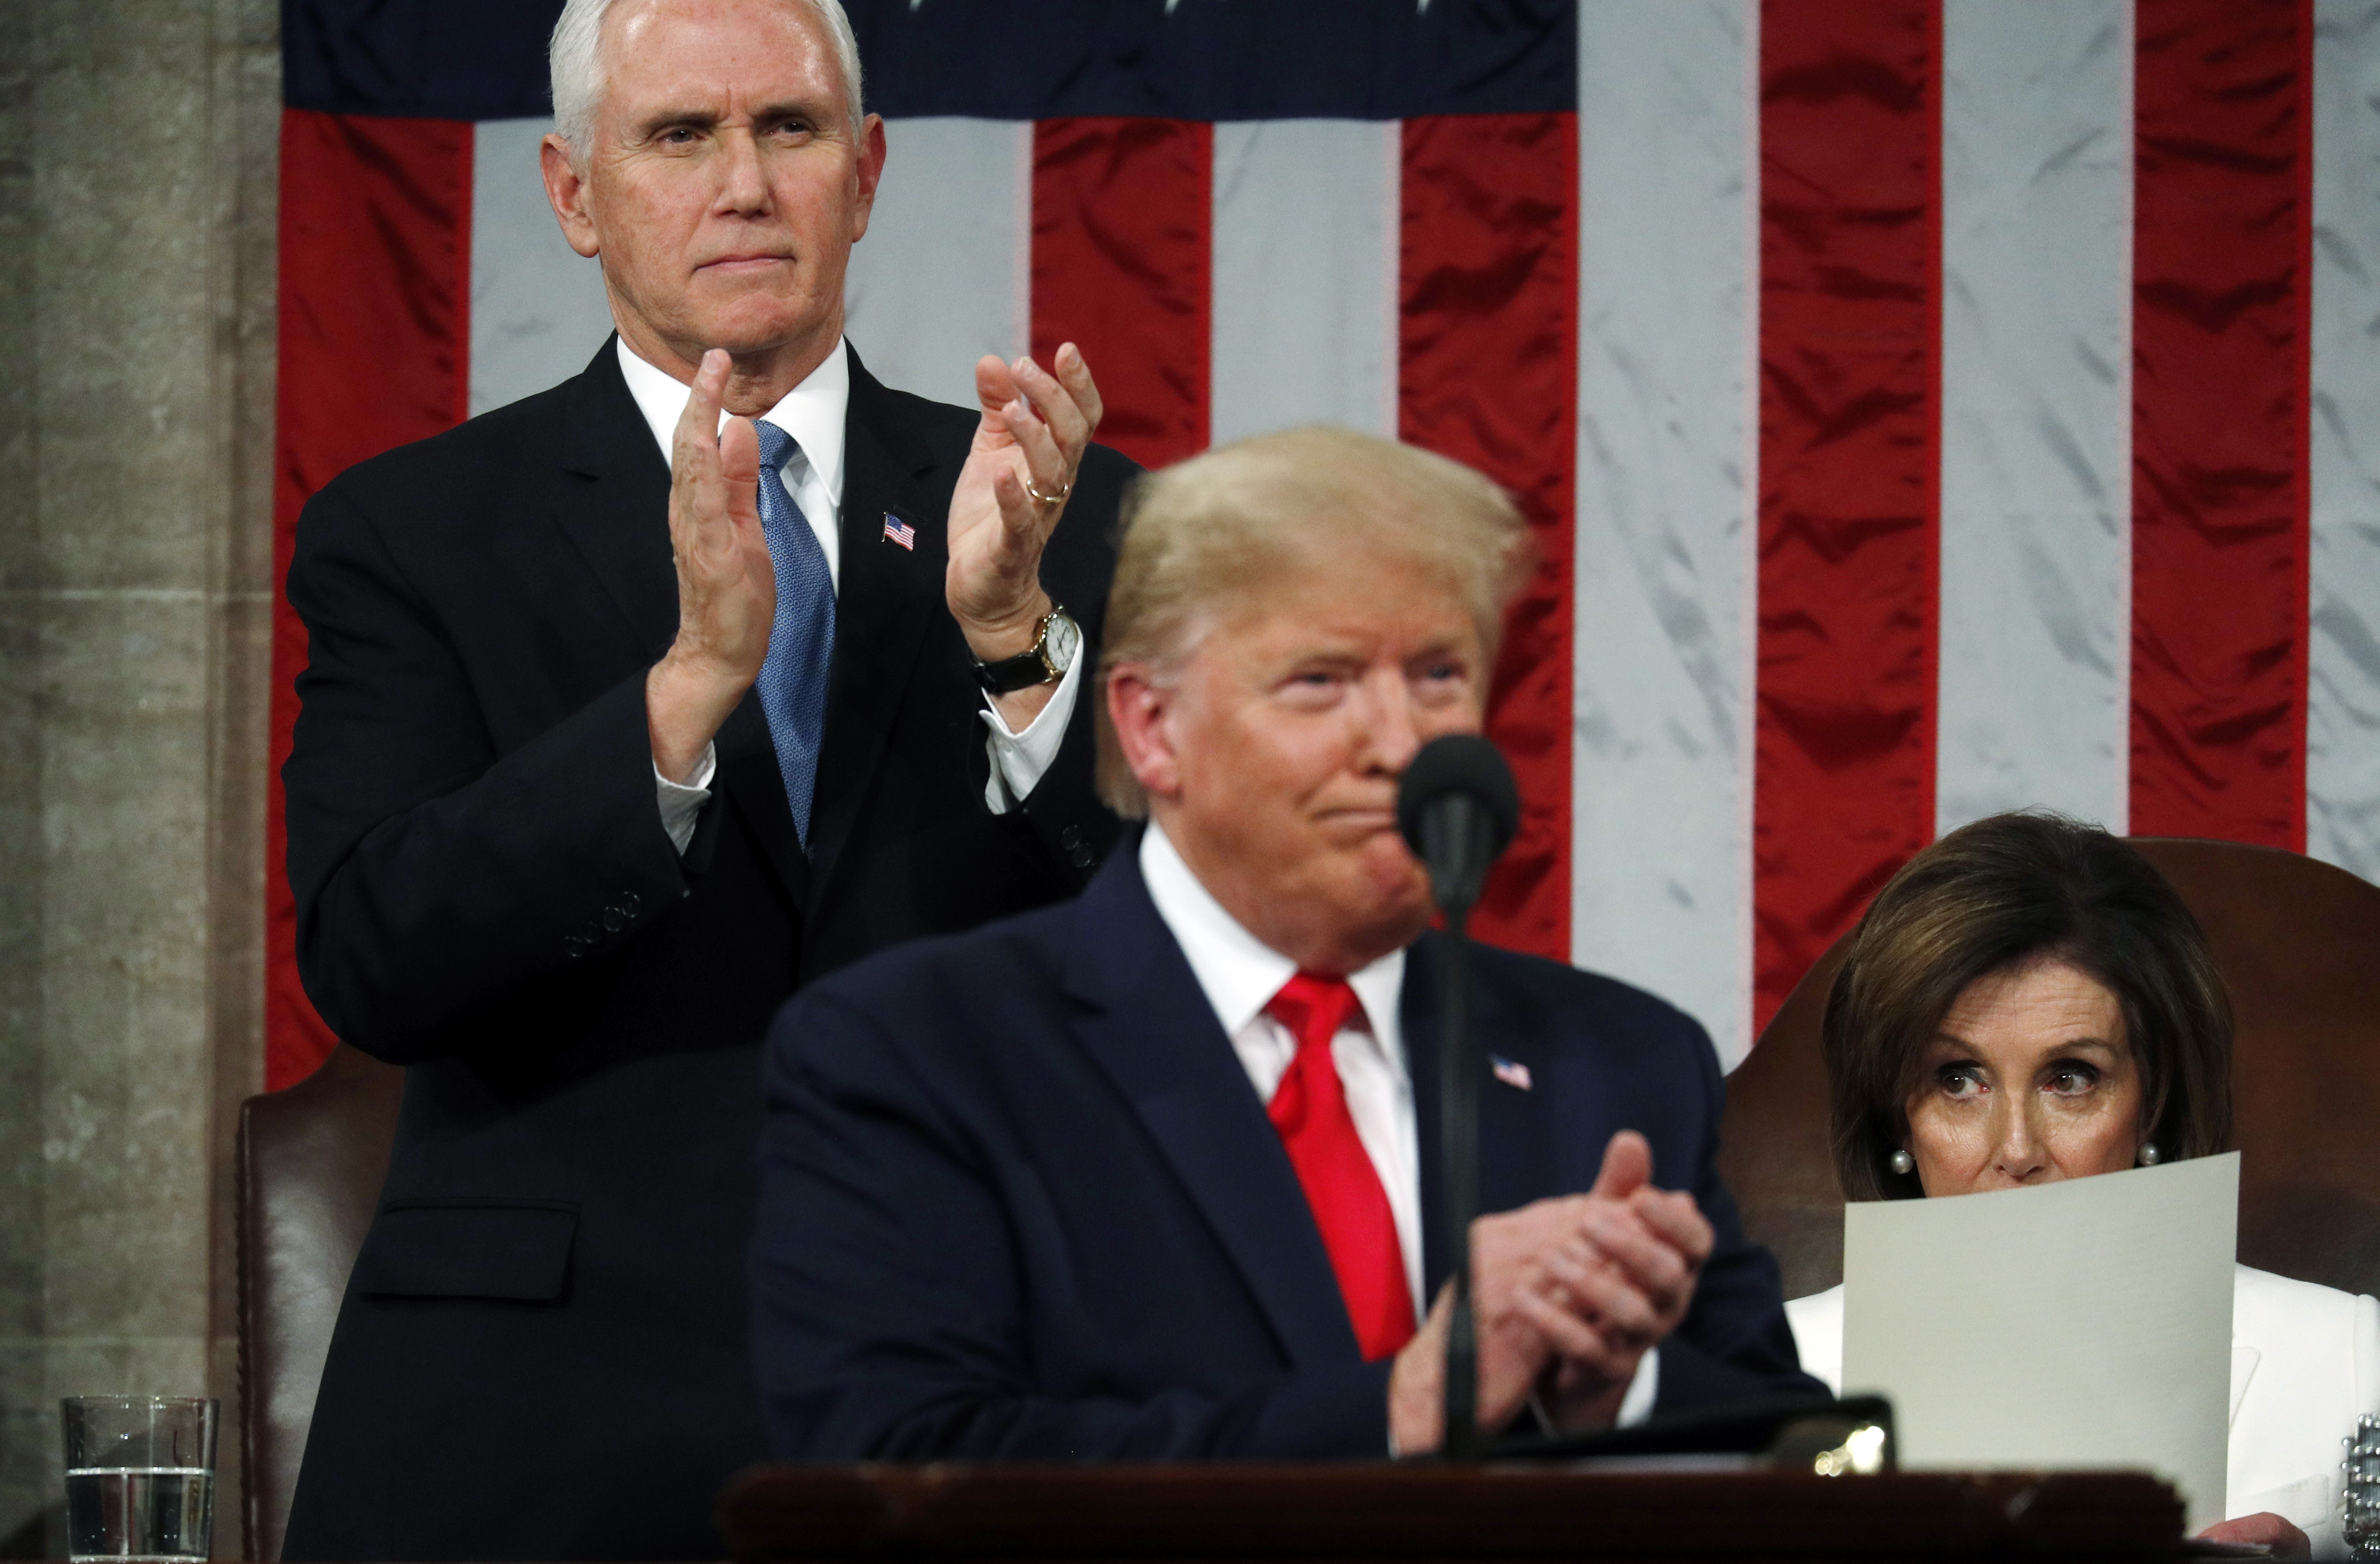 WASHINGTON, DC - FEBRUARY 04: U.S. Vice President Mike Pence applauds as House Speaker Nancy Pelosi remains seated during U.S. President Donald Trump's State of the Union address in the House chamber on February 4, 2020 in Washington, DC. Trump is delivering his third State of the Union address on the night before the U.S. Senate is set to vote in his impeachment trial. (Photo by Leah Millis-Pool/Getty Images)